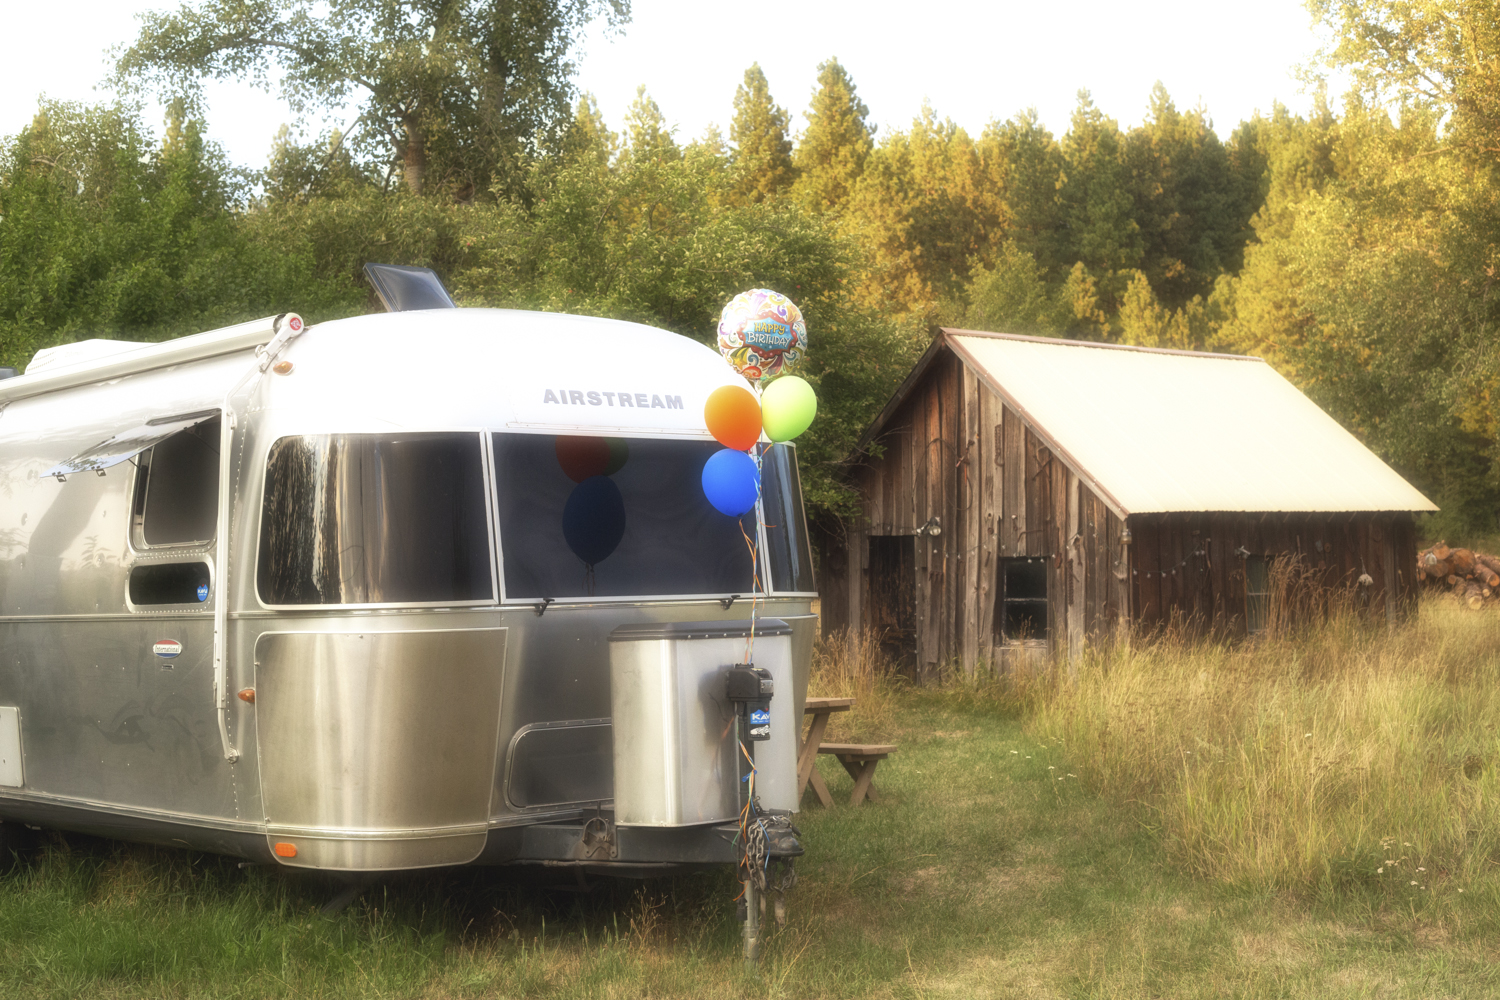 An Airstream Birthday via J5MM.com